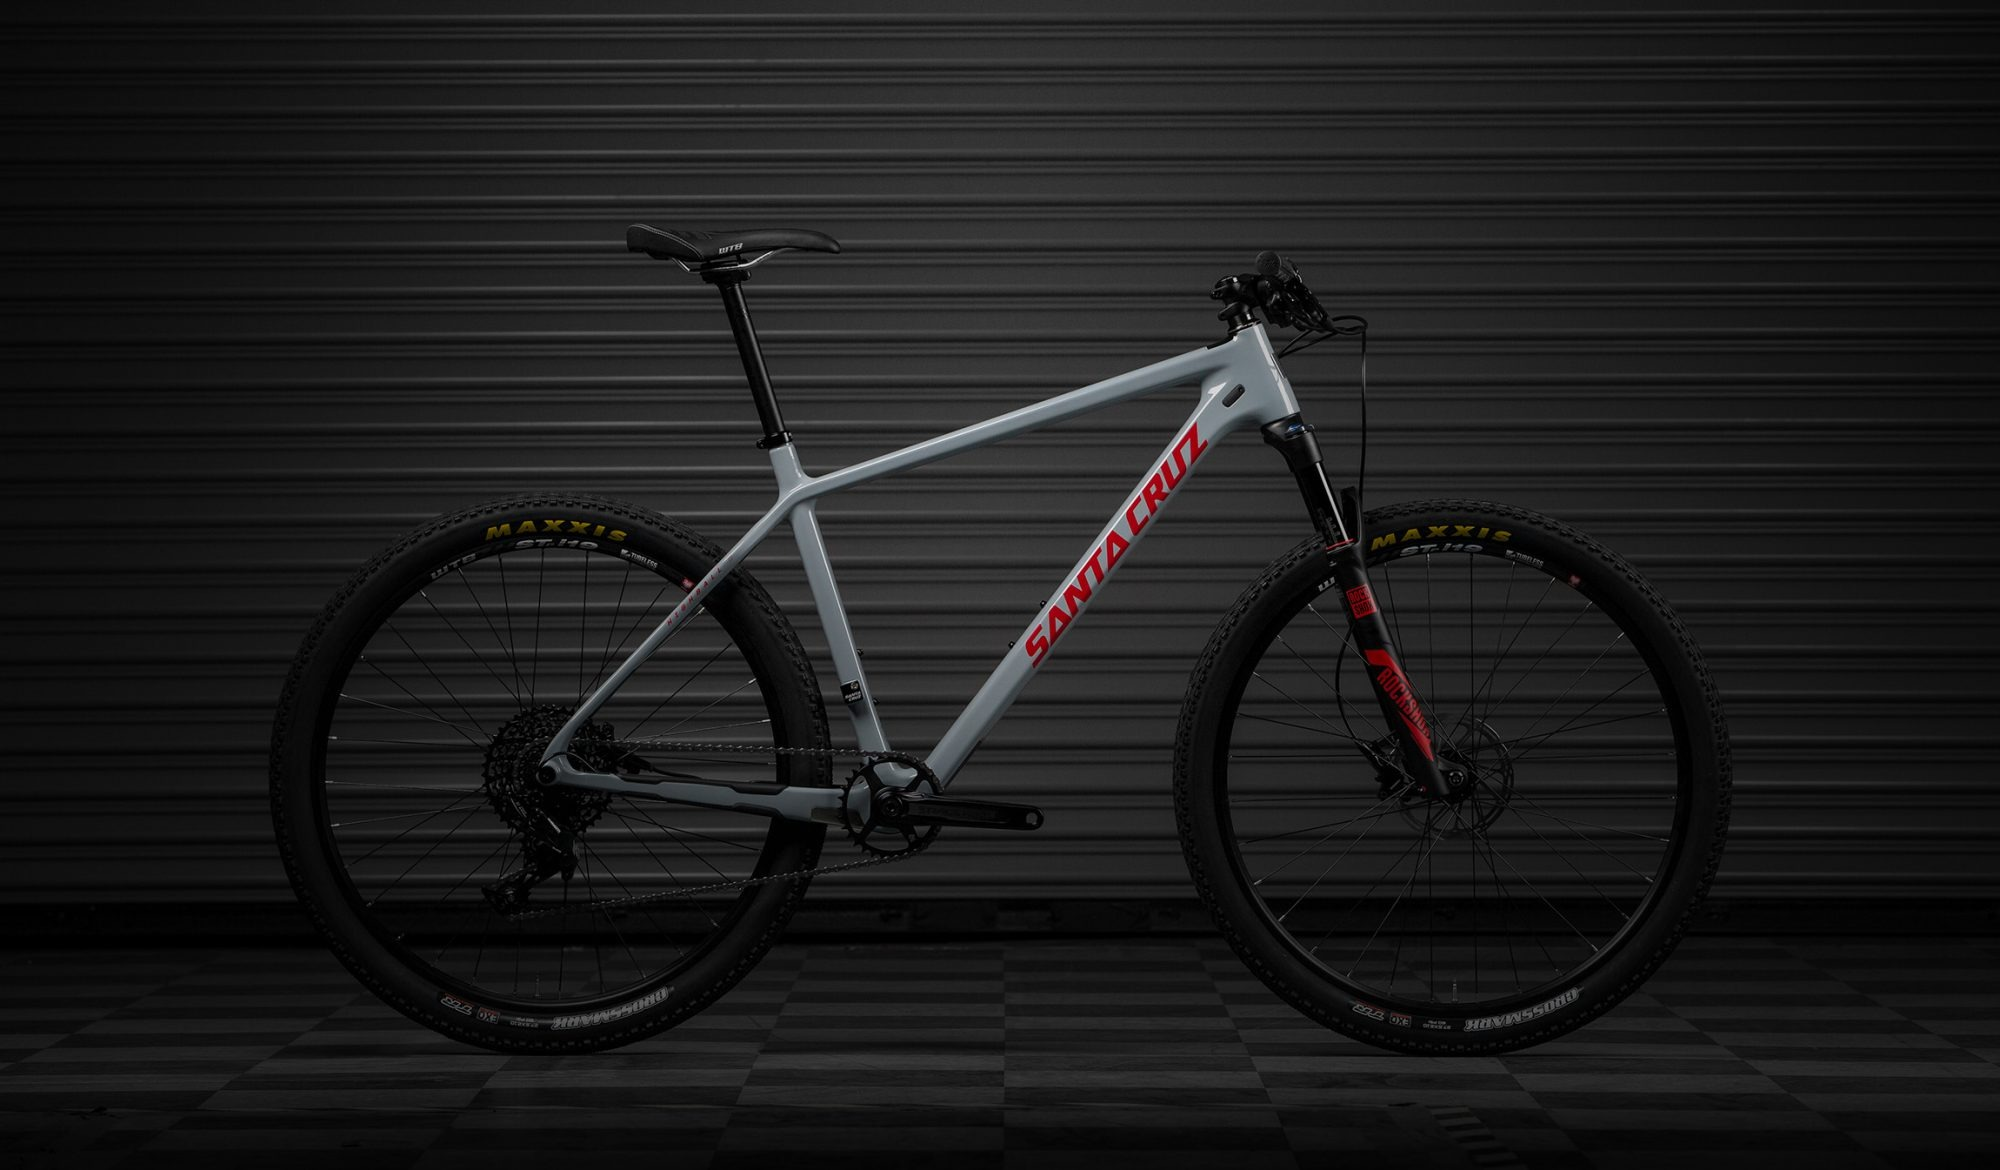 2018 Santa Cruz Highball 27.5 XC Race Mountain Bike